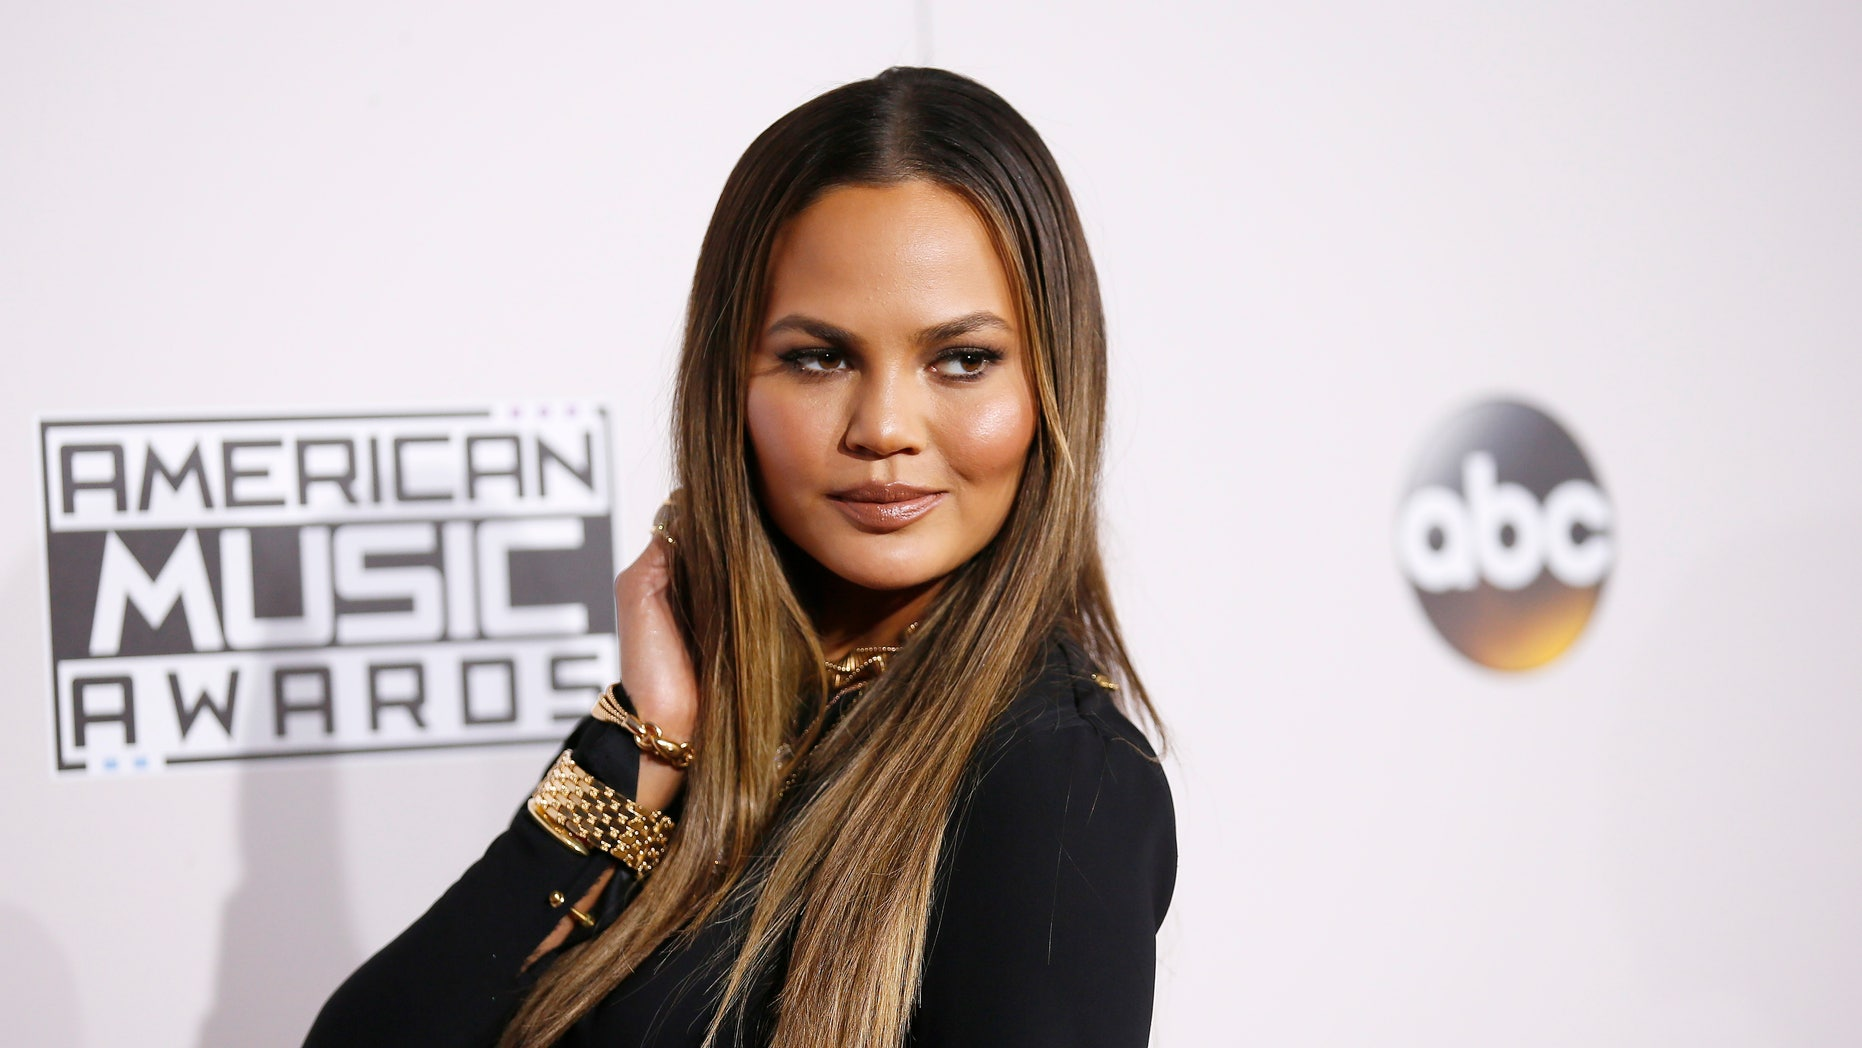 Chrissy Teigen sold more than 250,000 copies of her cookbook last year.